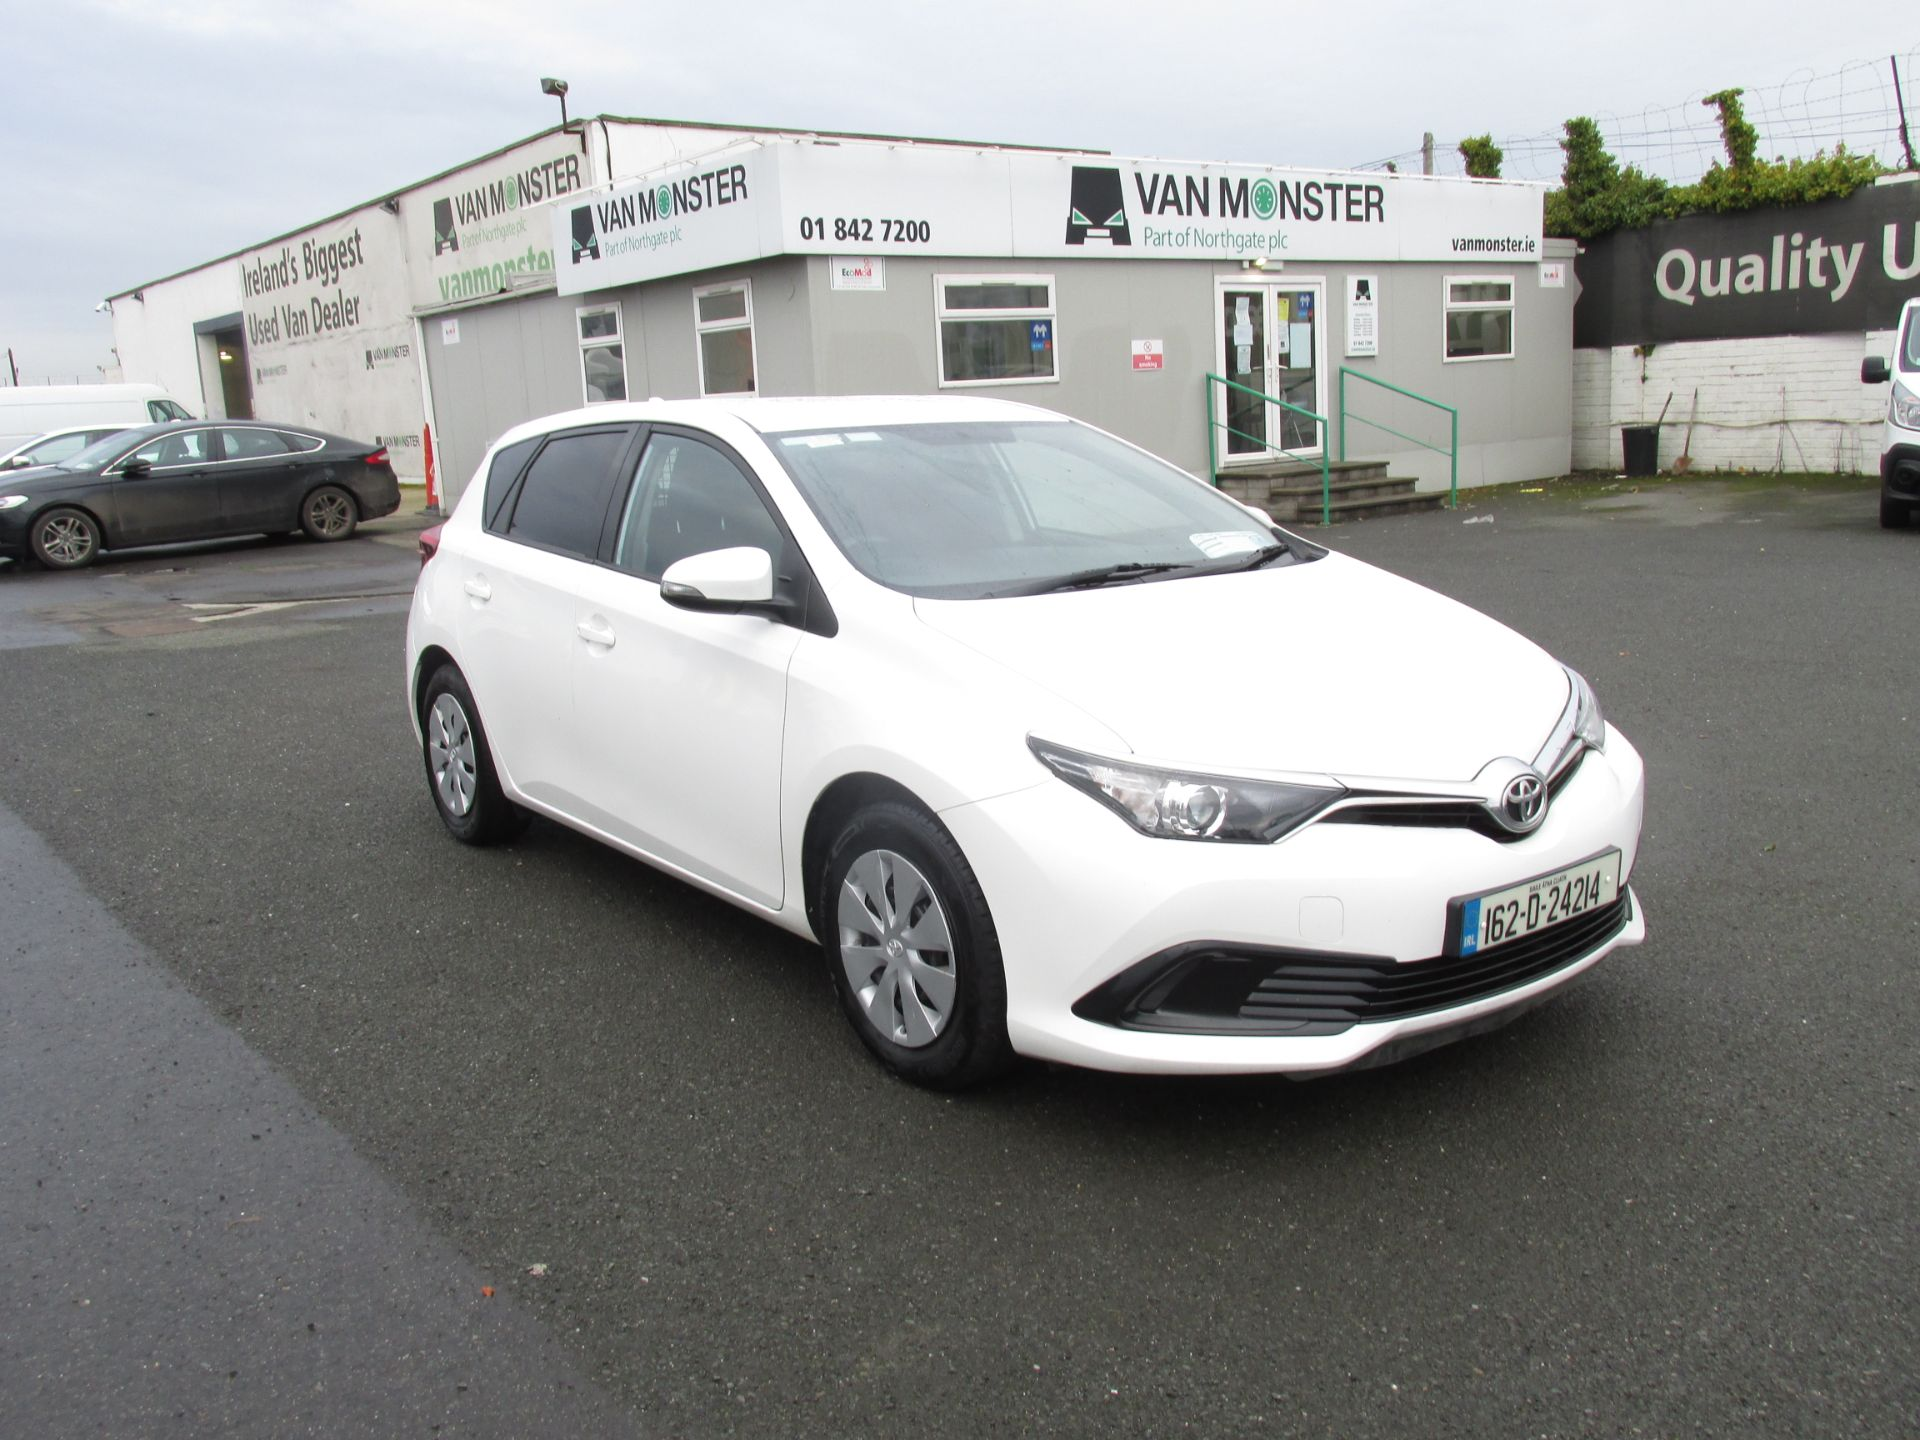 2016 Toyota Auris 1.4d-4d Terra 4DR click and collect call sales for more info (162D24214)